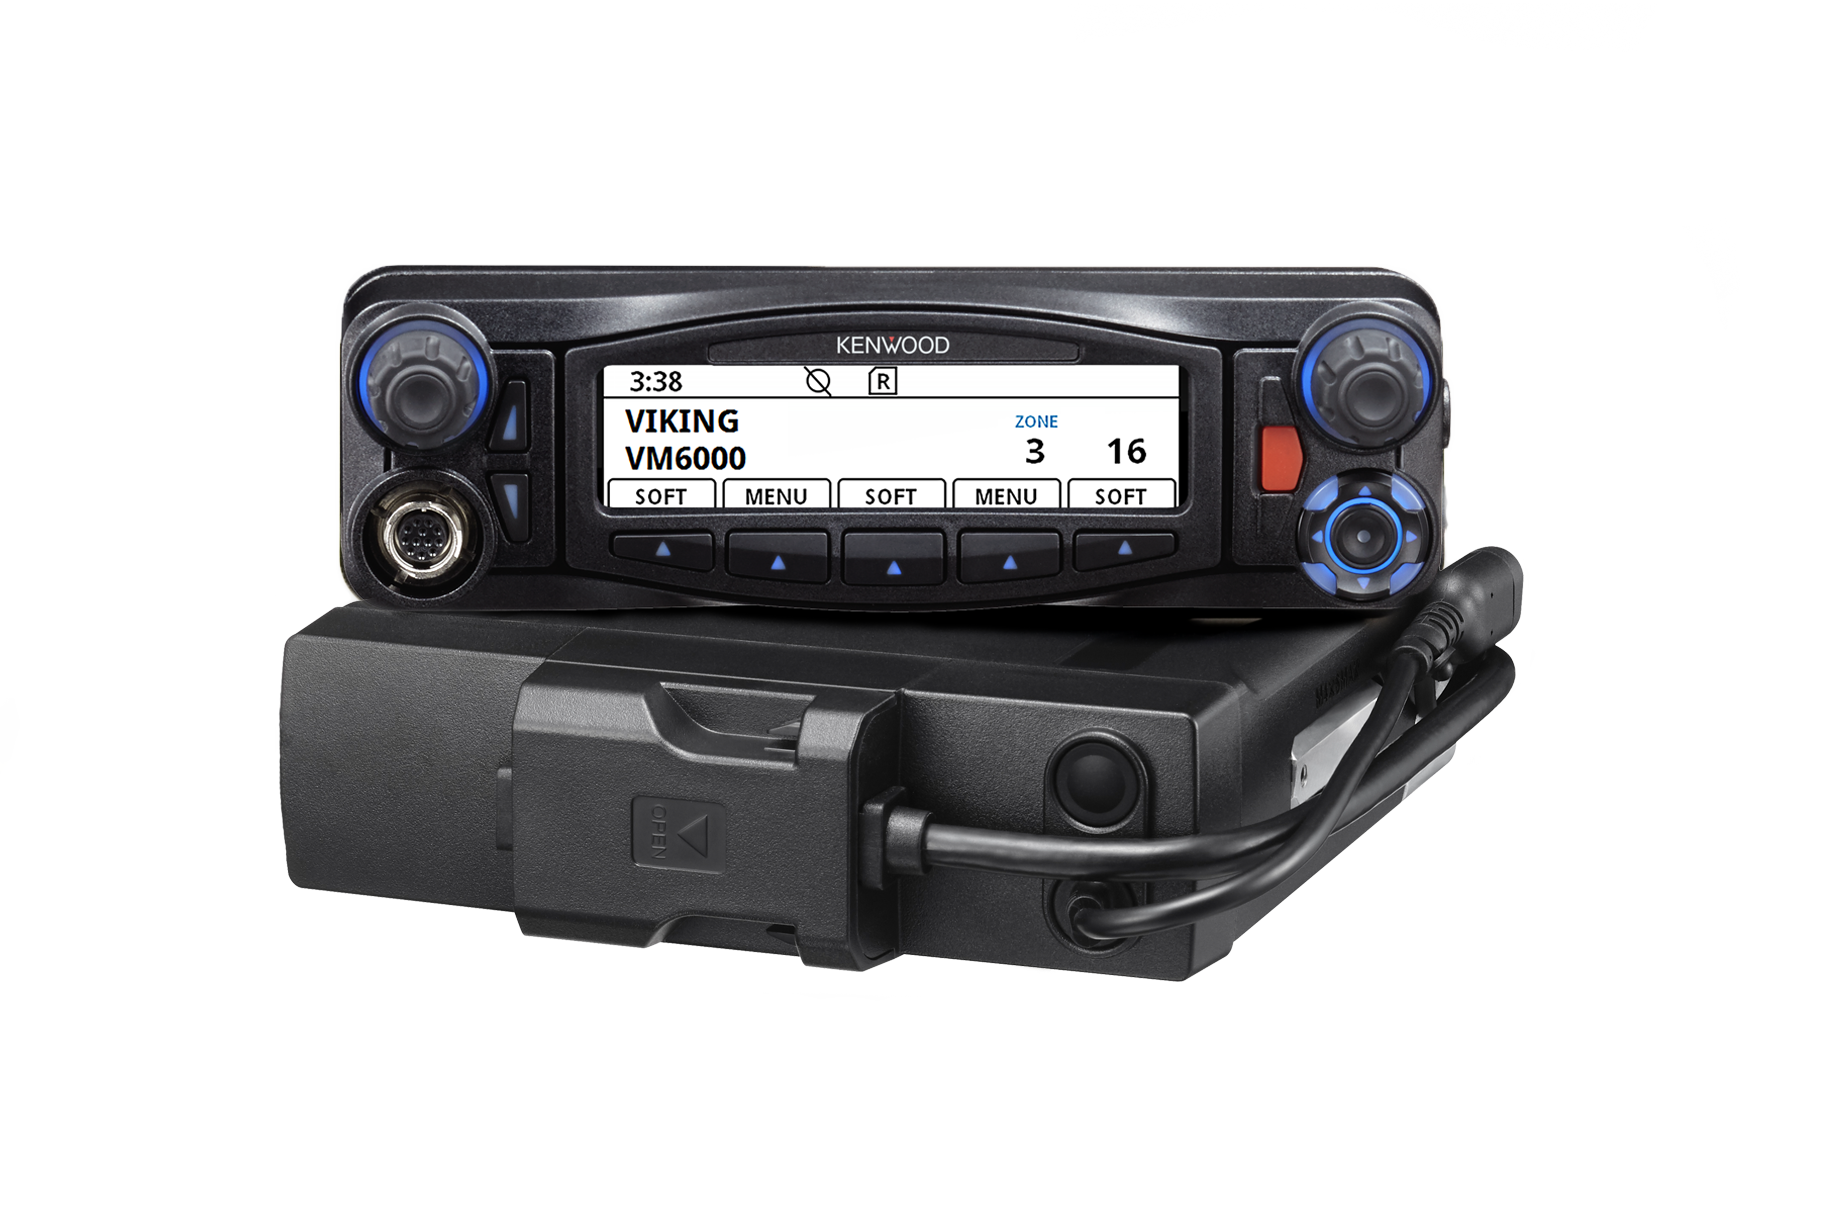 Front view of Viking VM6000 one unit with handheld microphone